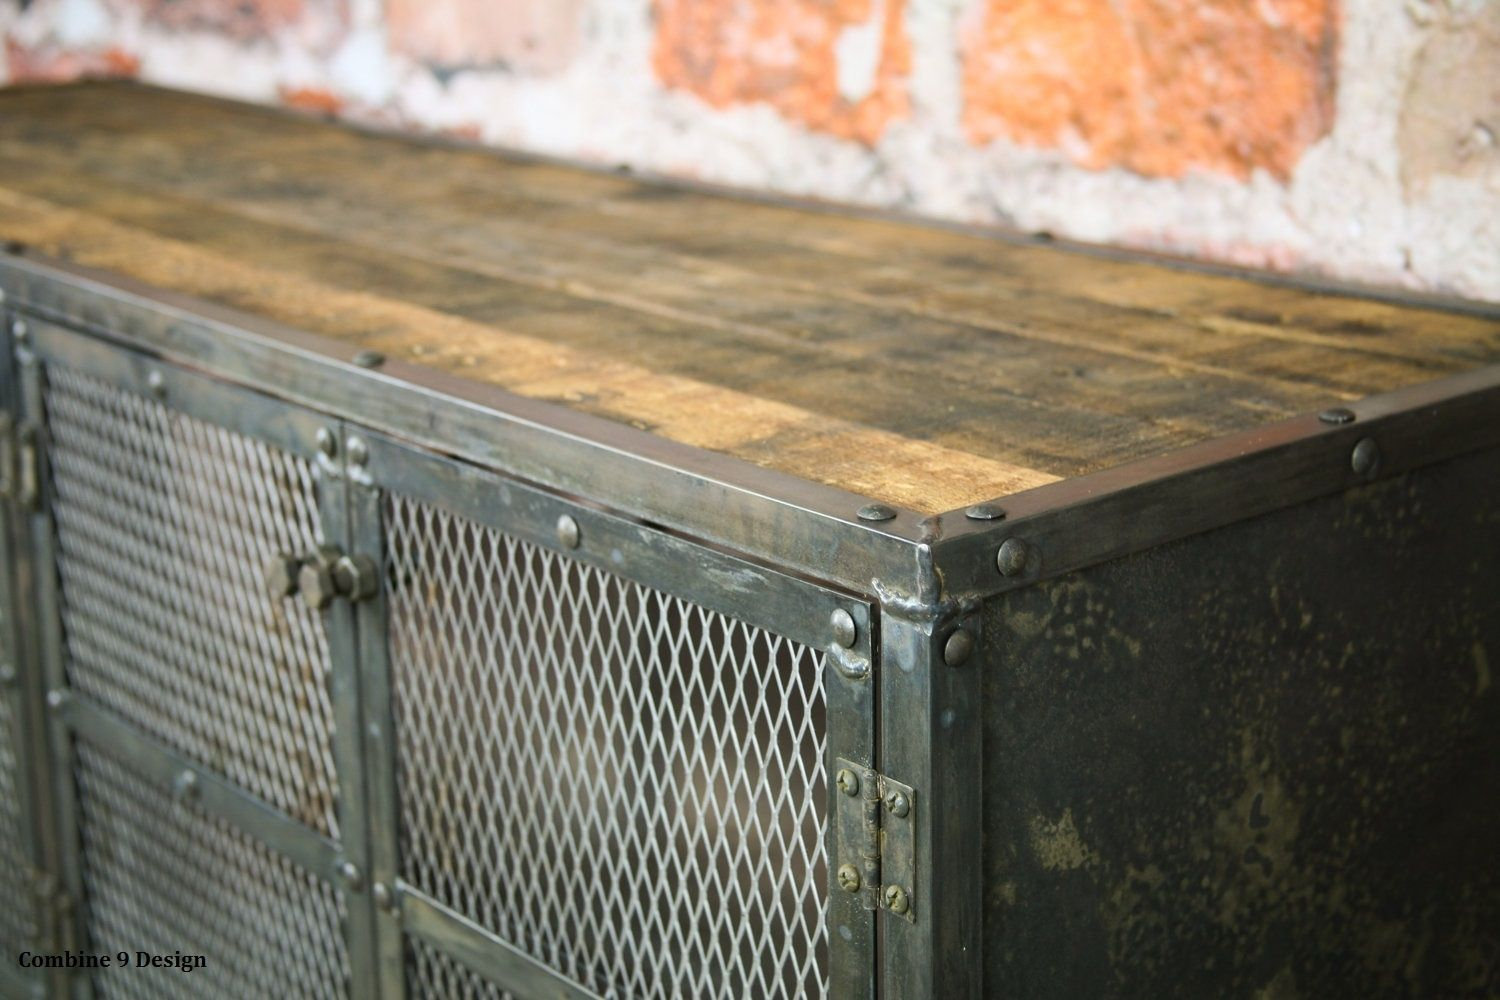 Buy A Hand Crafted Buffet Hutch Vintage Industrial Urban Modern Design Reclaimed Wood Media Console Made To Order From Combine 9